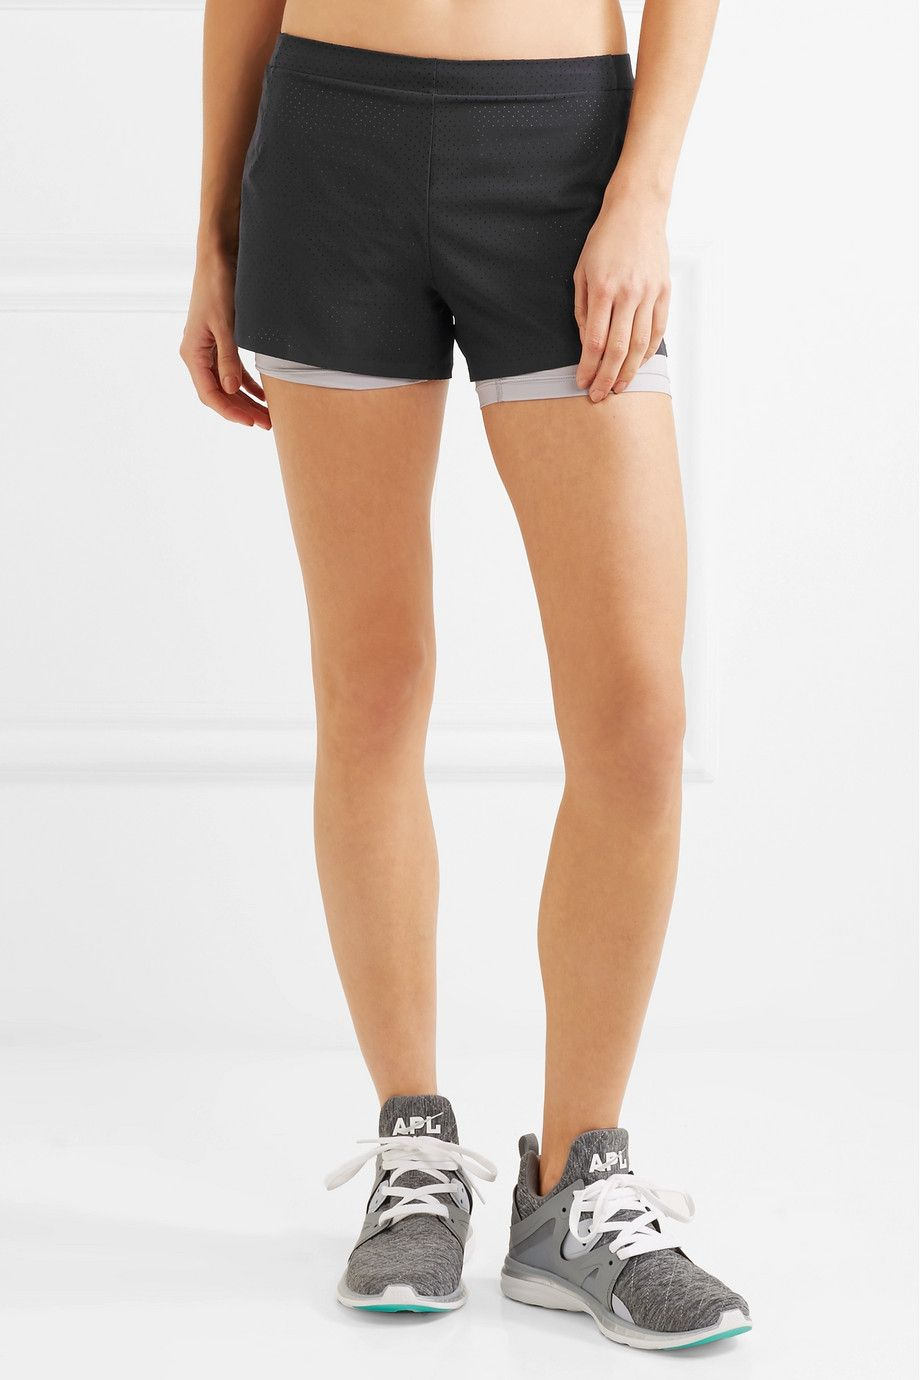 Nikelab Aeroswift Mesh-trimmed Dri-fit Stretch-shell Shorts - Black Nike T5GF3